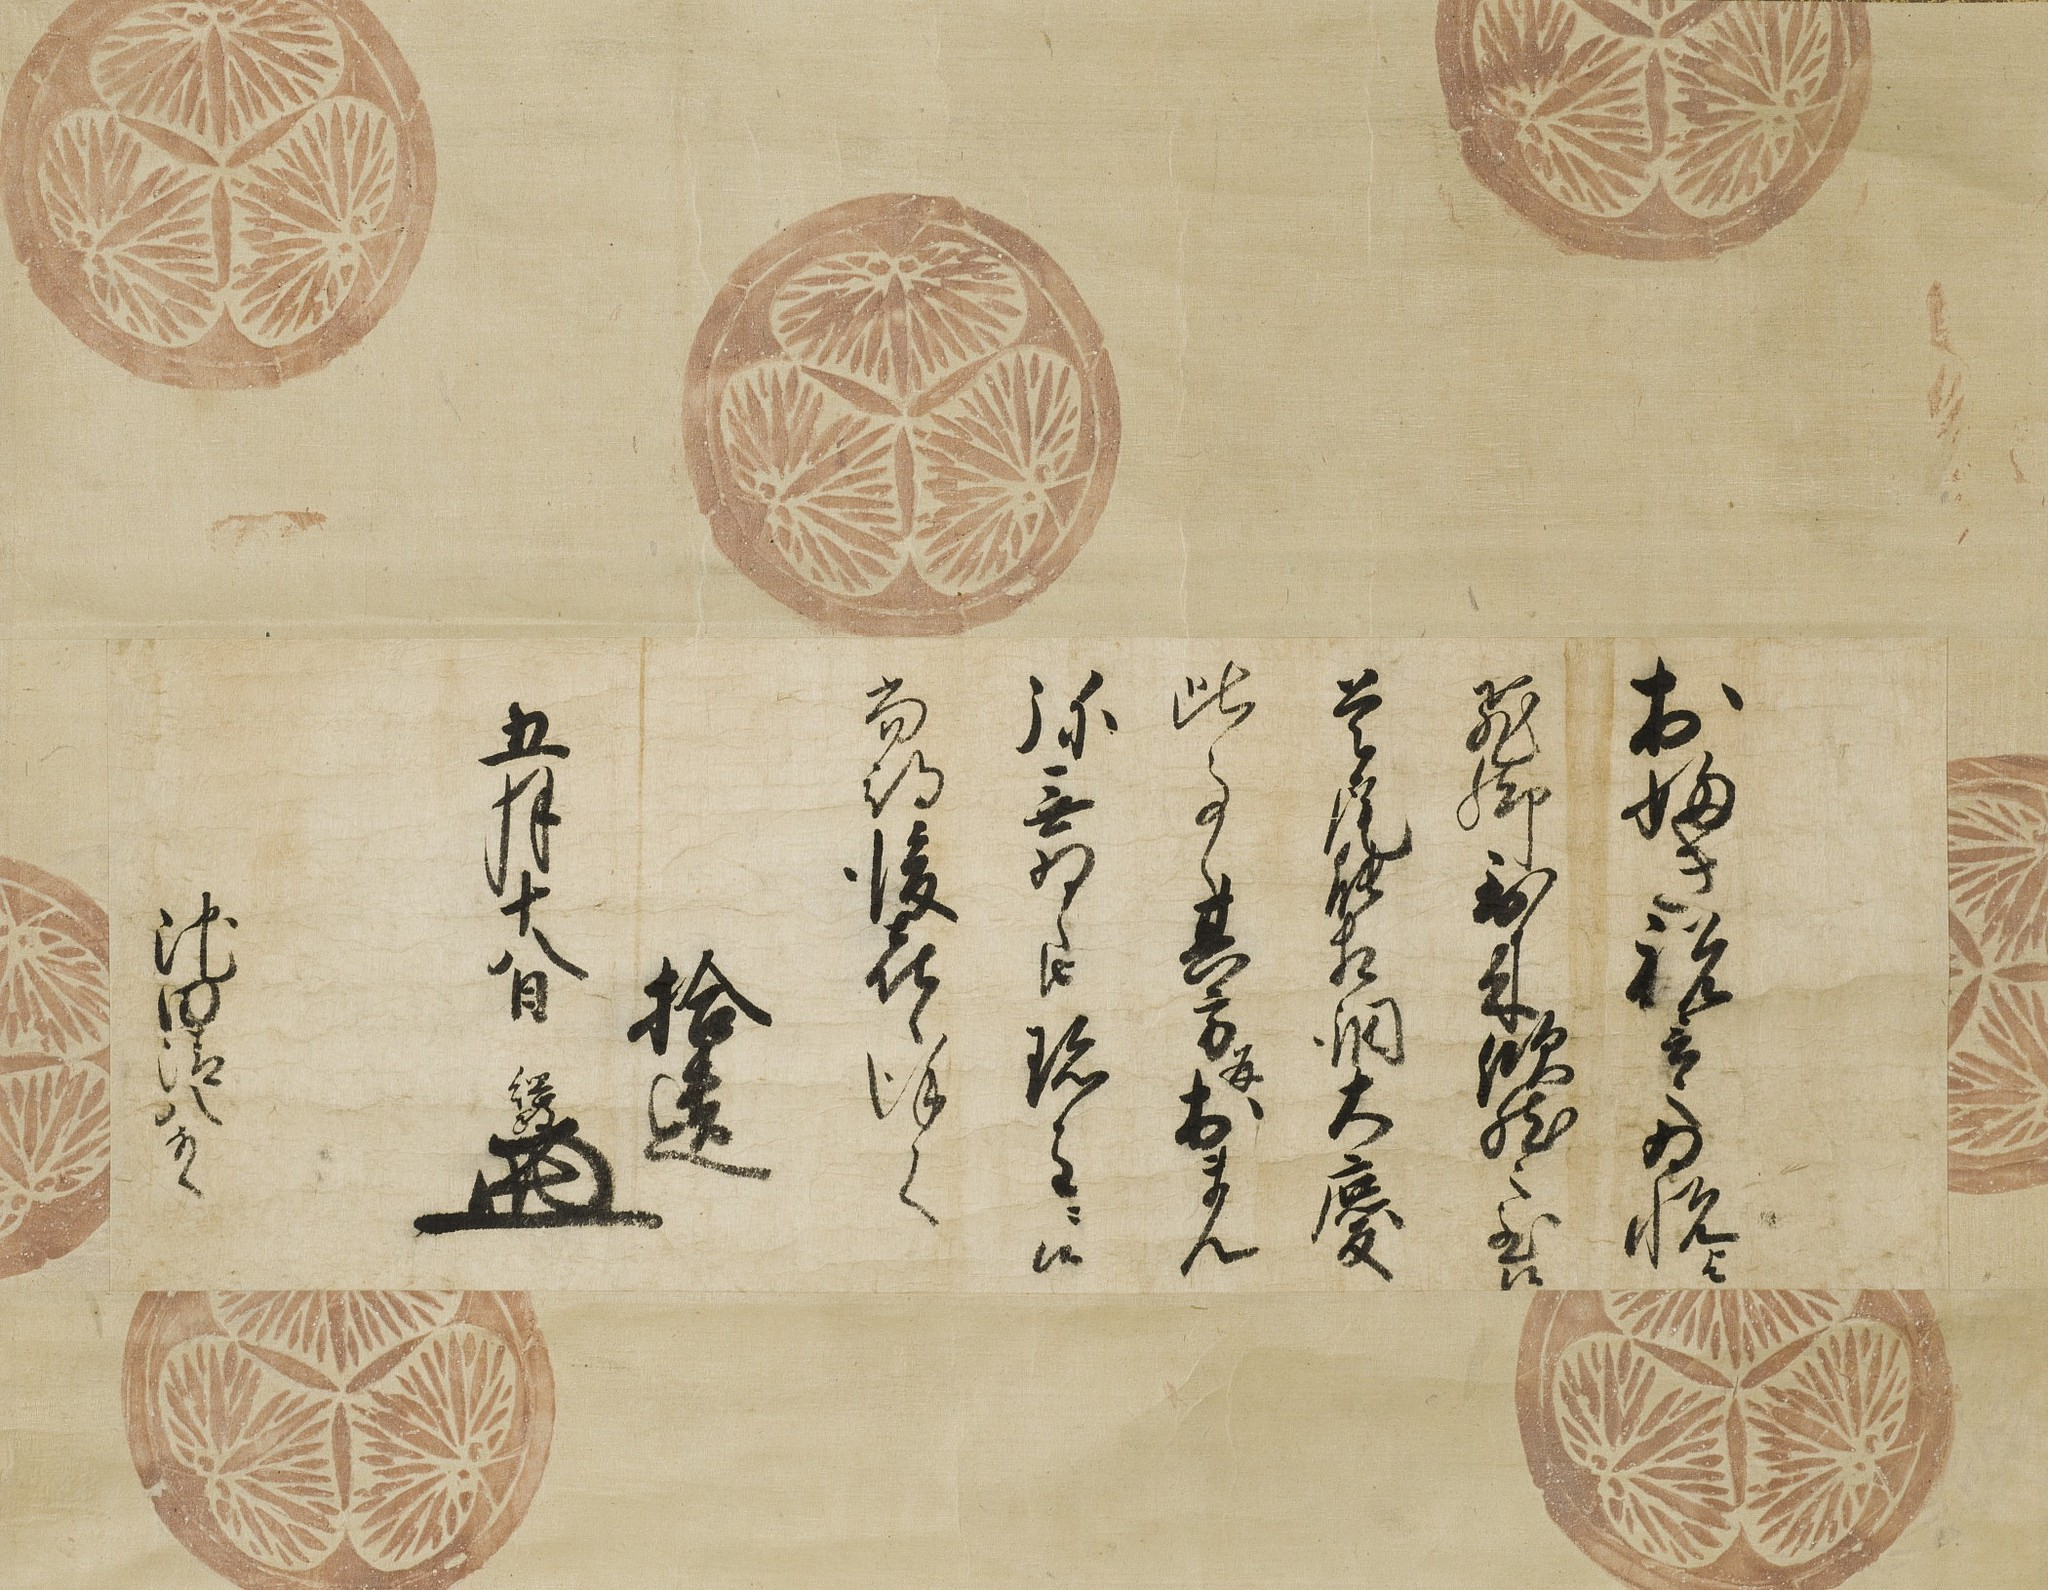 Japanese calligraphy | © Los Angeles County Museum of Art (Public Domain)